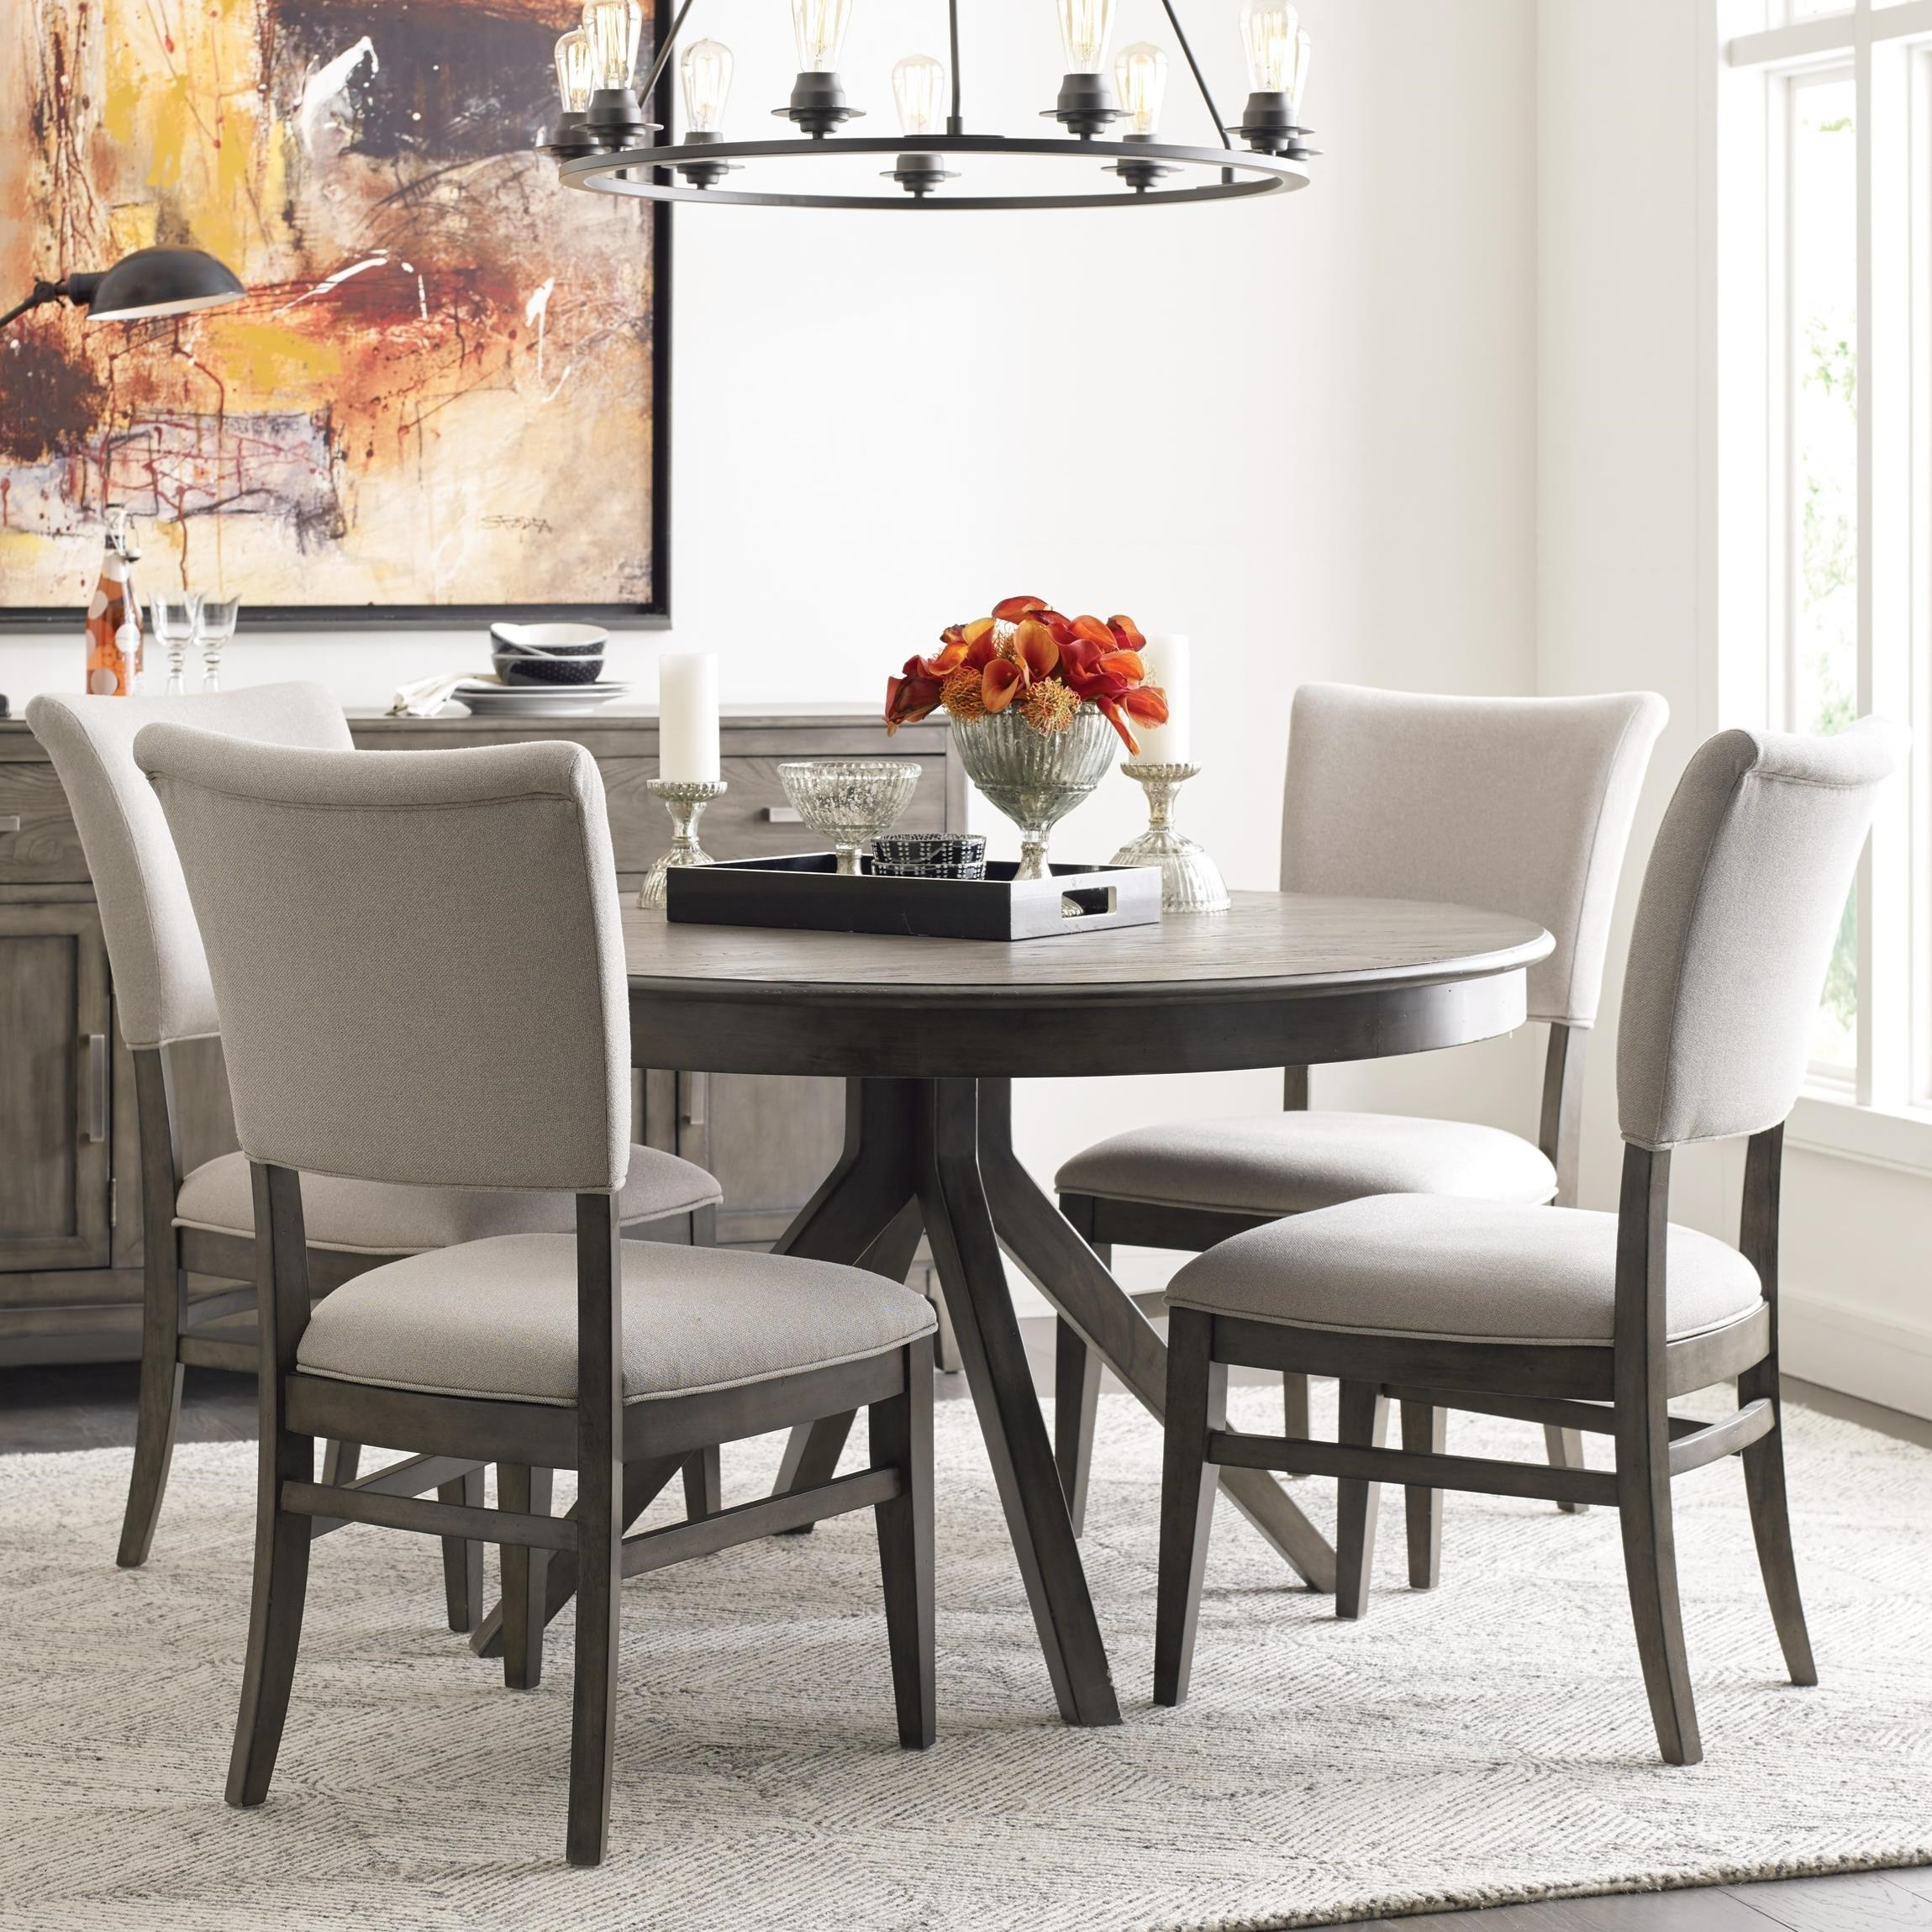 Cascade Dining Table Set with 4 Chairs by Kincaid Furniture at Johnny Janosik